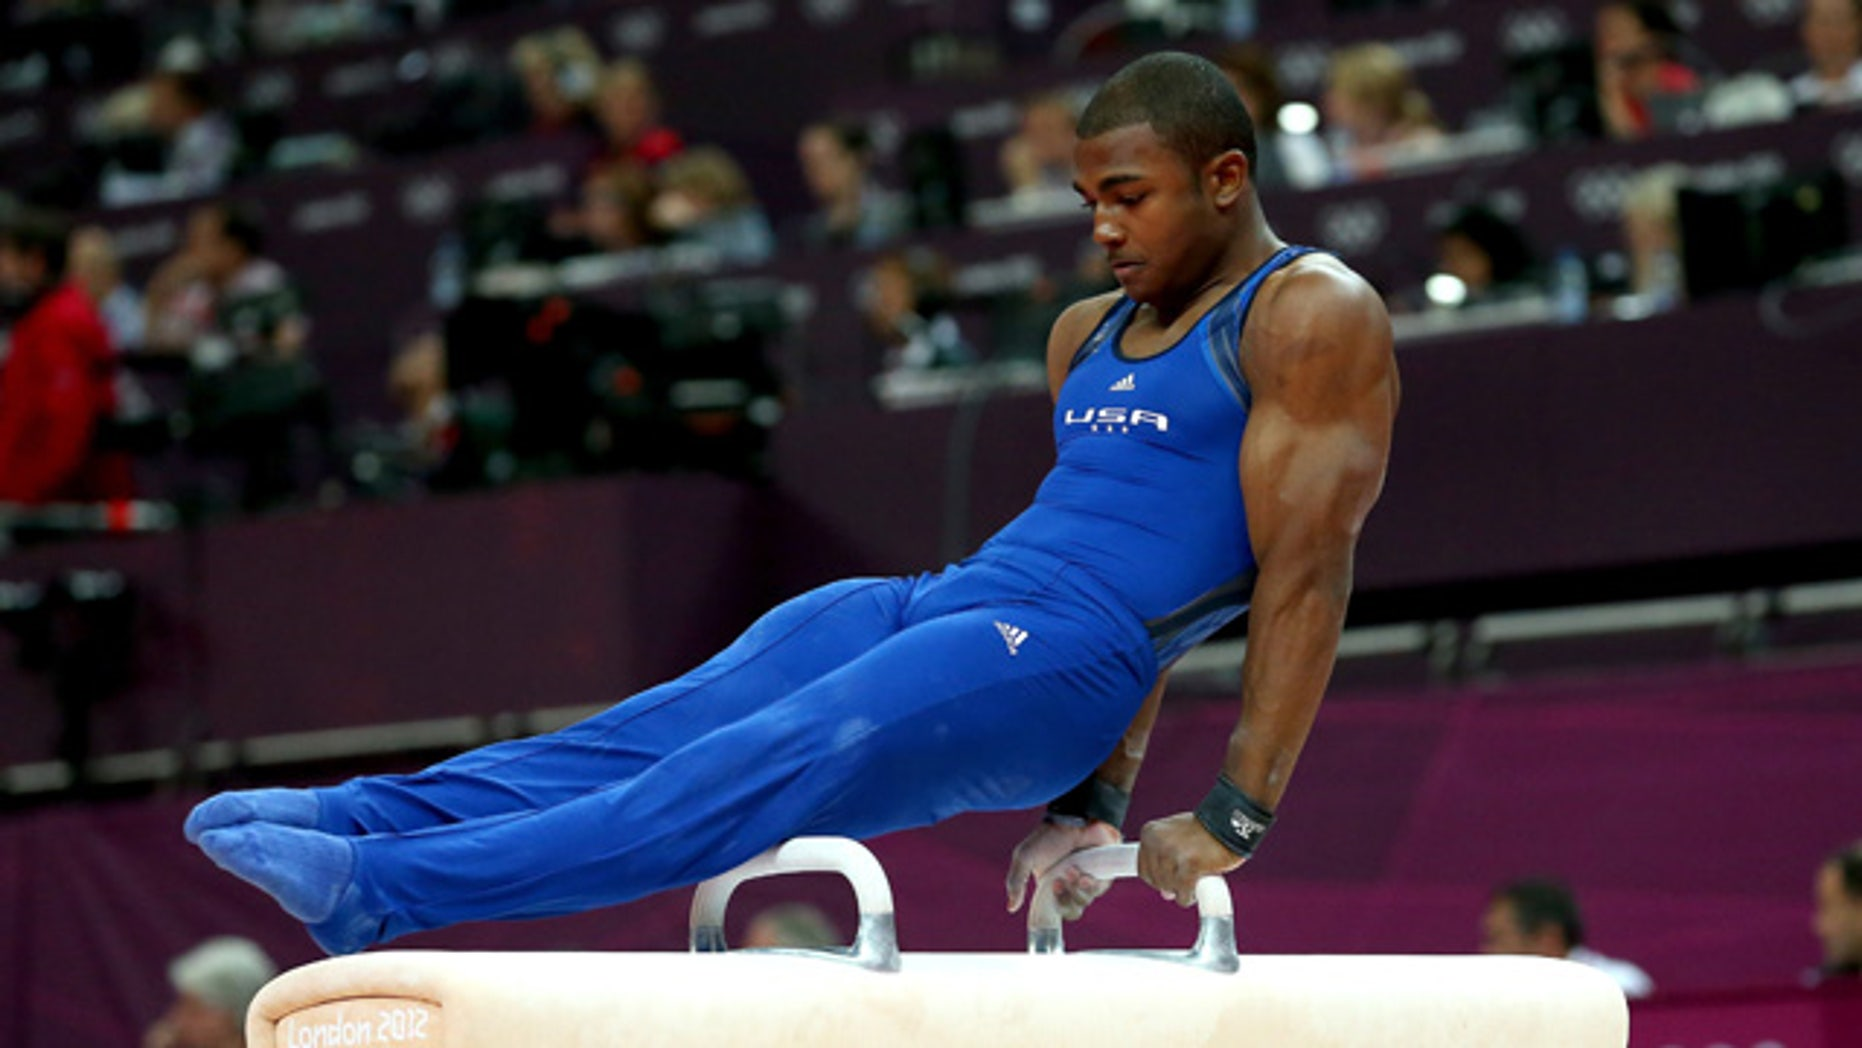 July, 28, 2012: John Orozco of the United States of America competes in the pommel horse in the Artistic Gymnastics Men's Team qualification on Day 1 of the London 2012 Olympic Games at North Greenwich Arena in London, England.